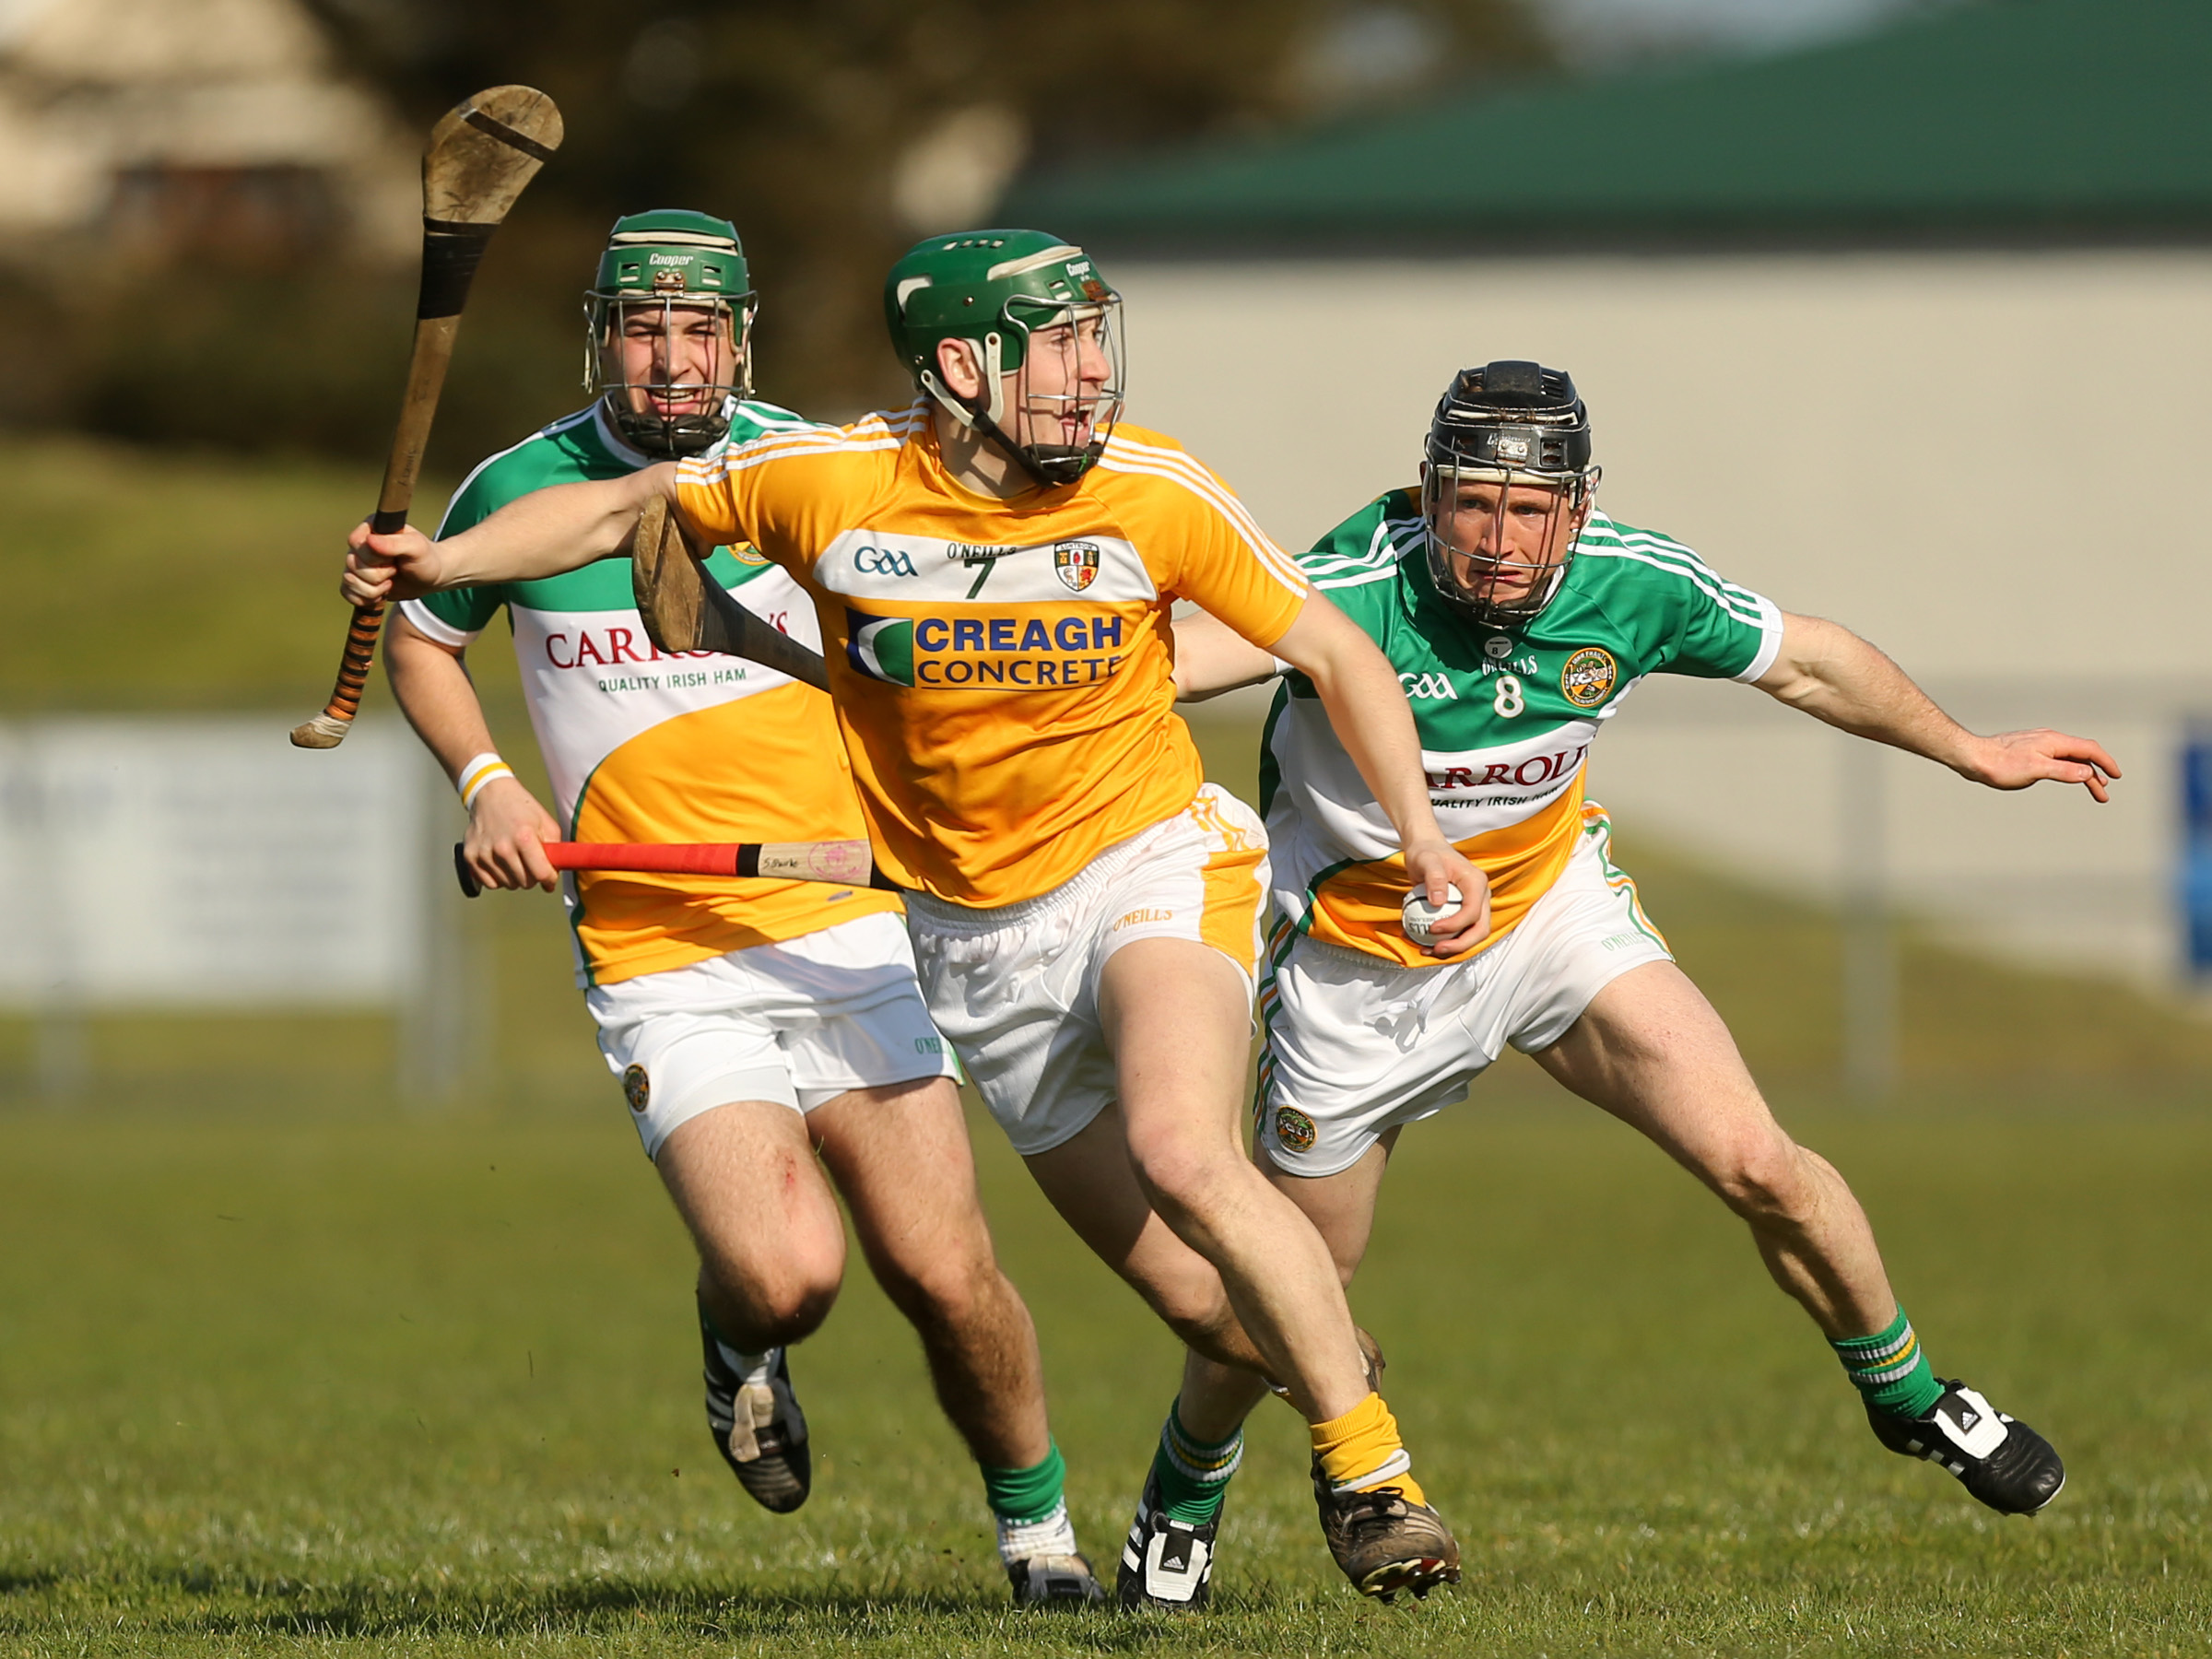 Paul Shiels has returned to the Antrim fold after missing the 2016 campaign through injury